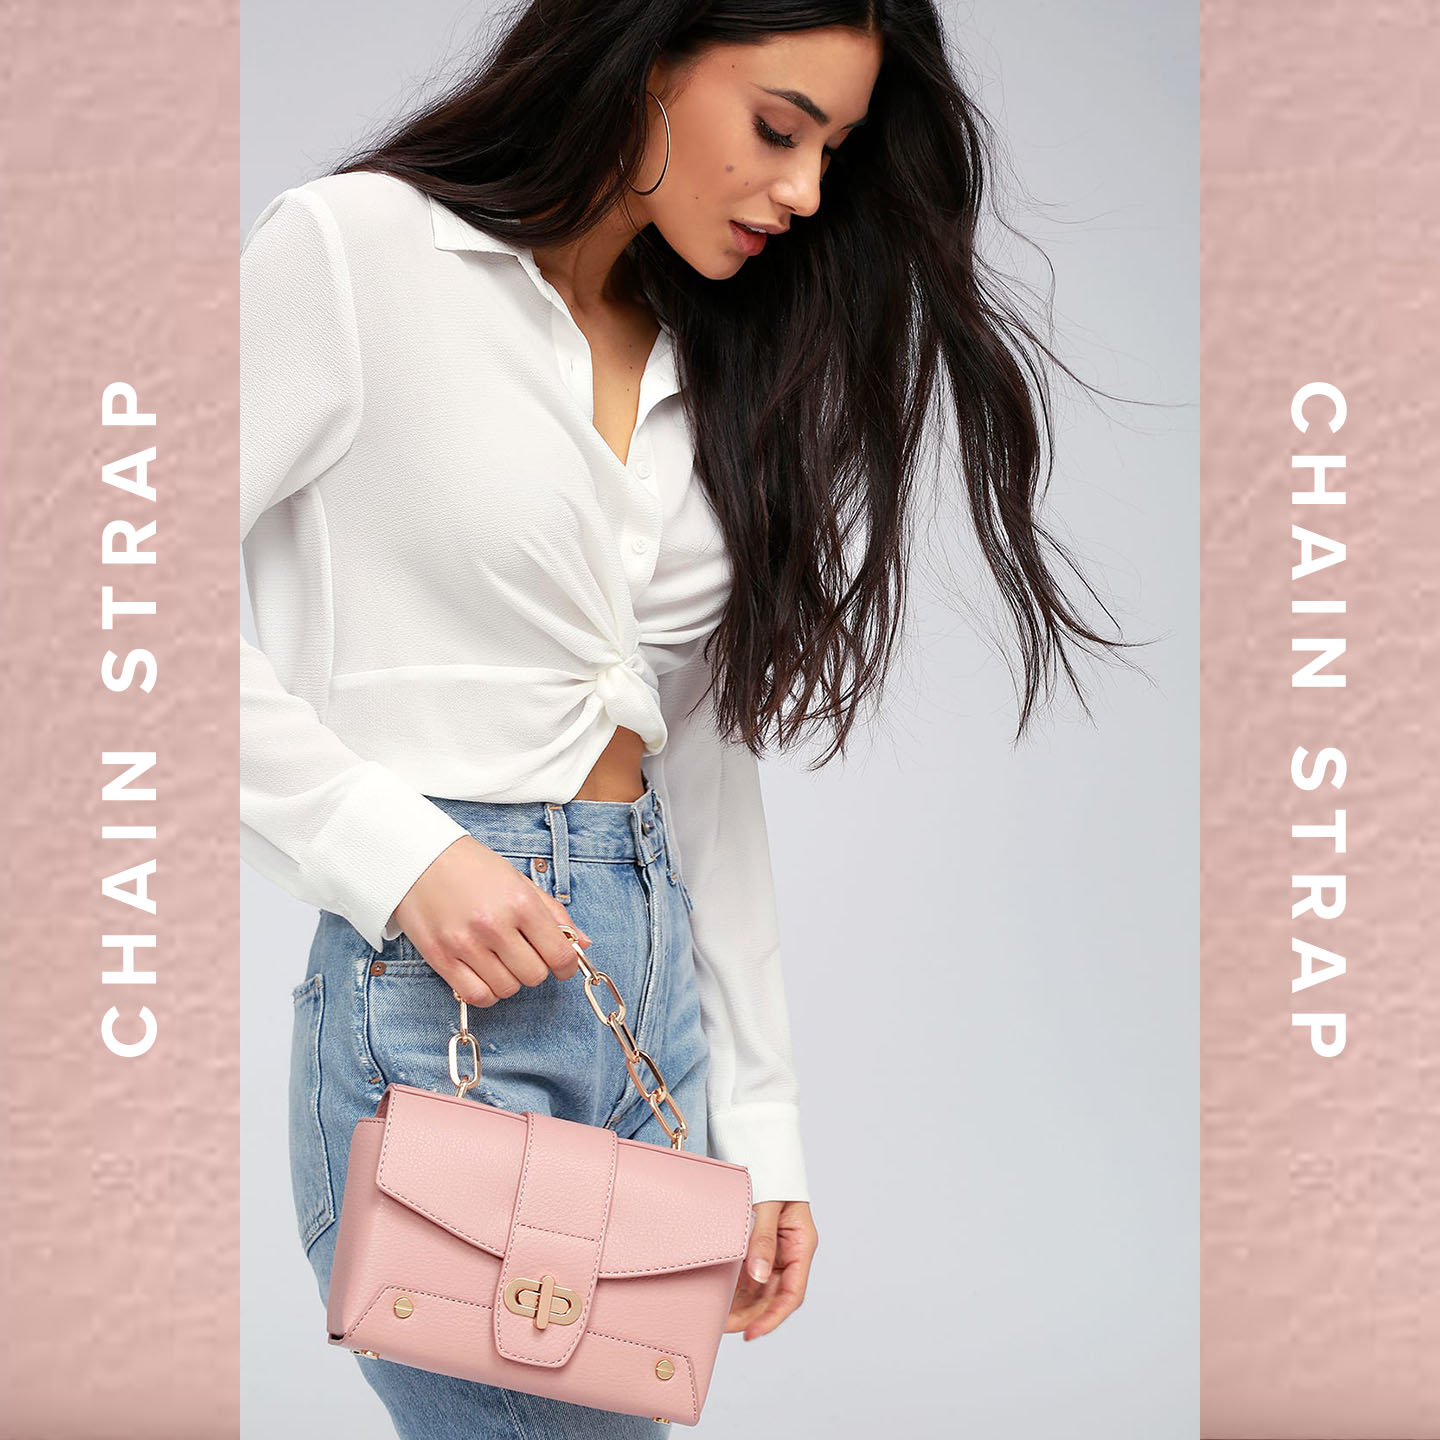 chain strap bags for fall trends